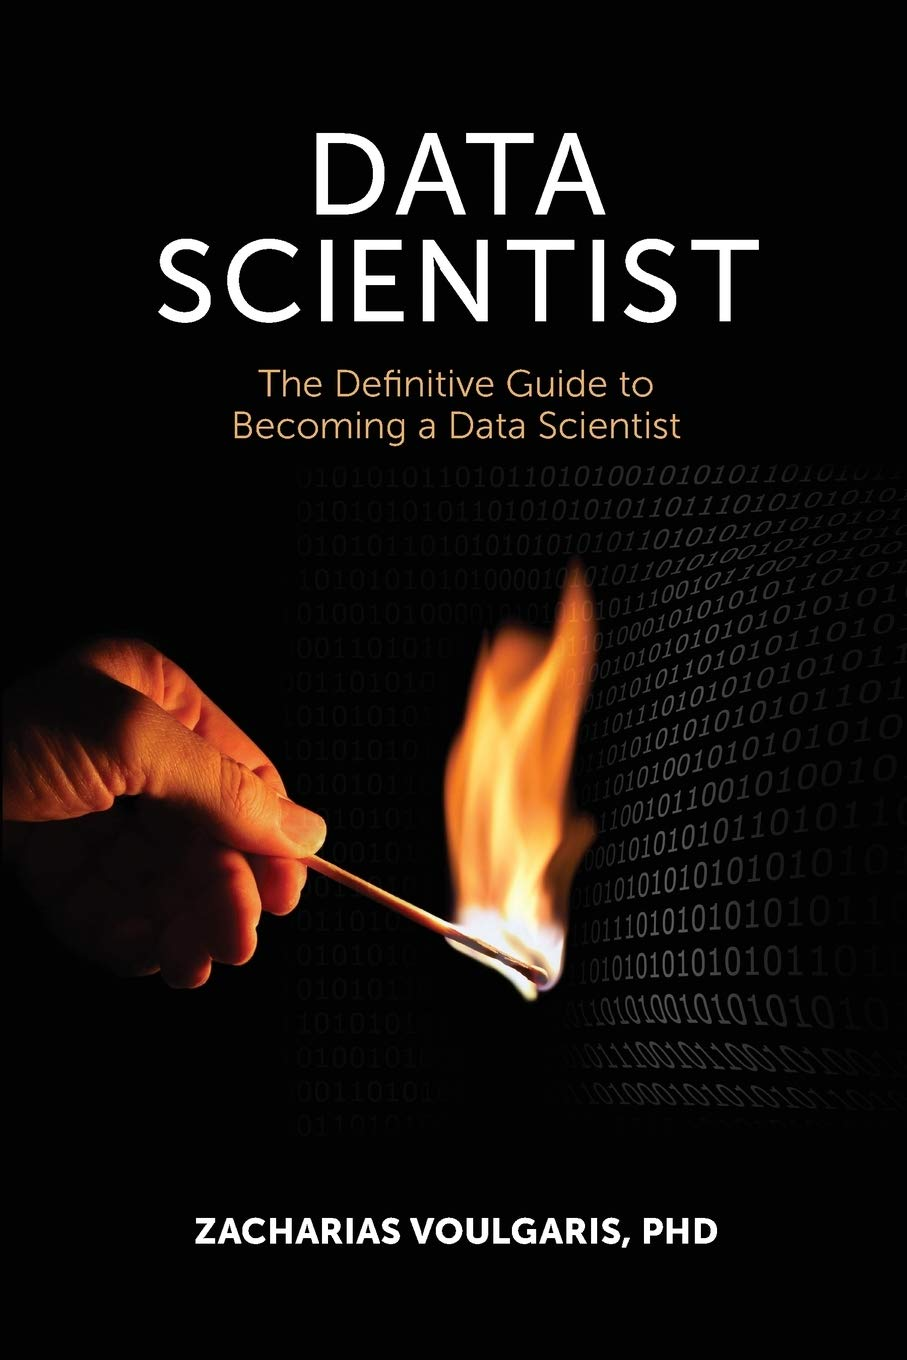 Data Scientist  The Definitive Guide To Becoming A Data Scientist